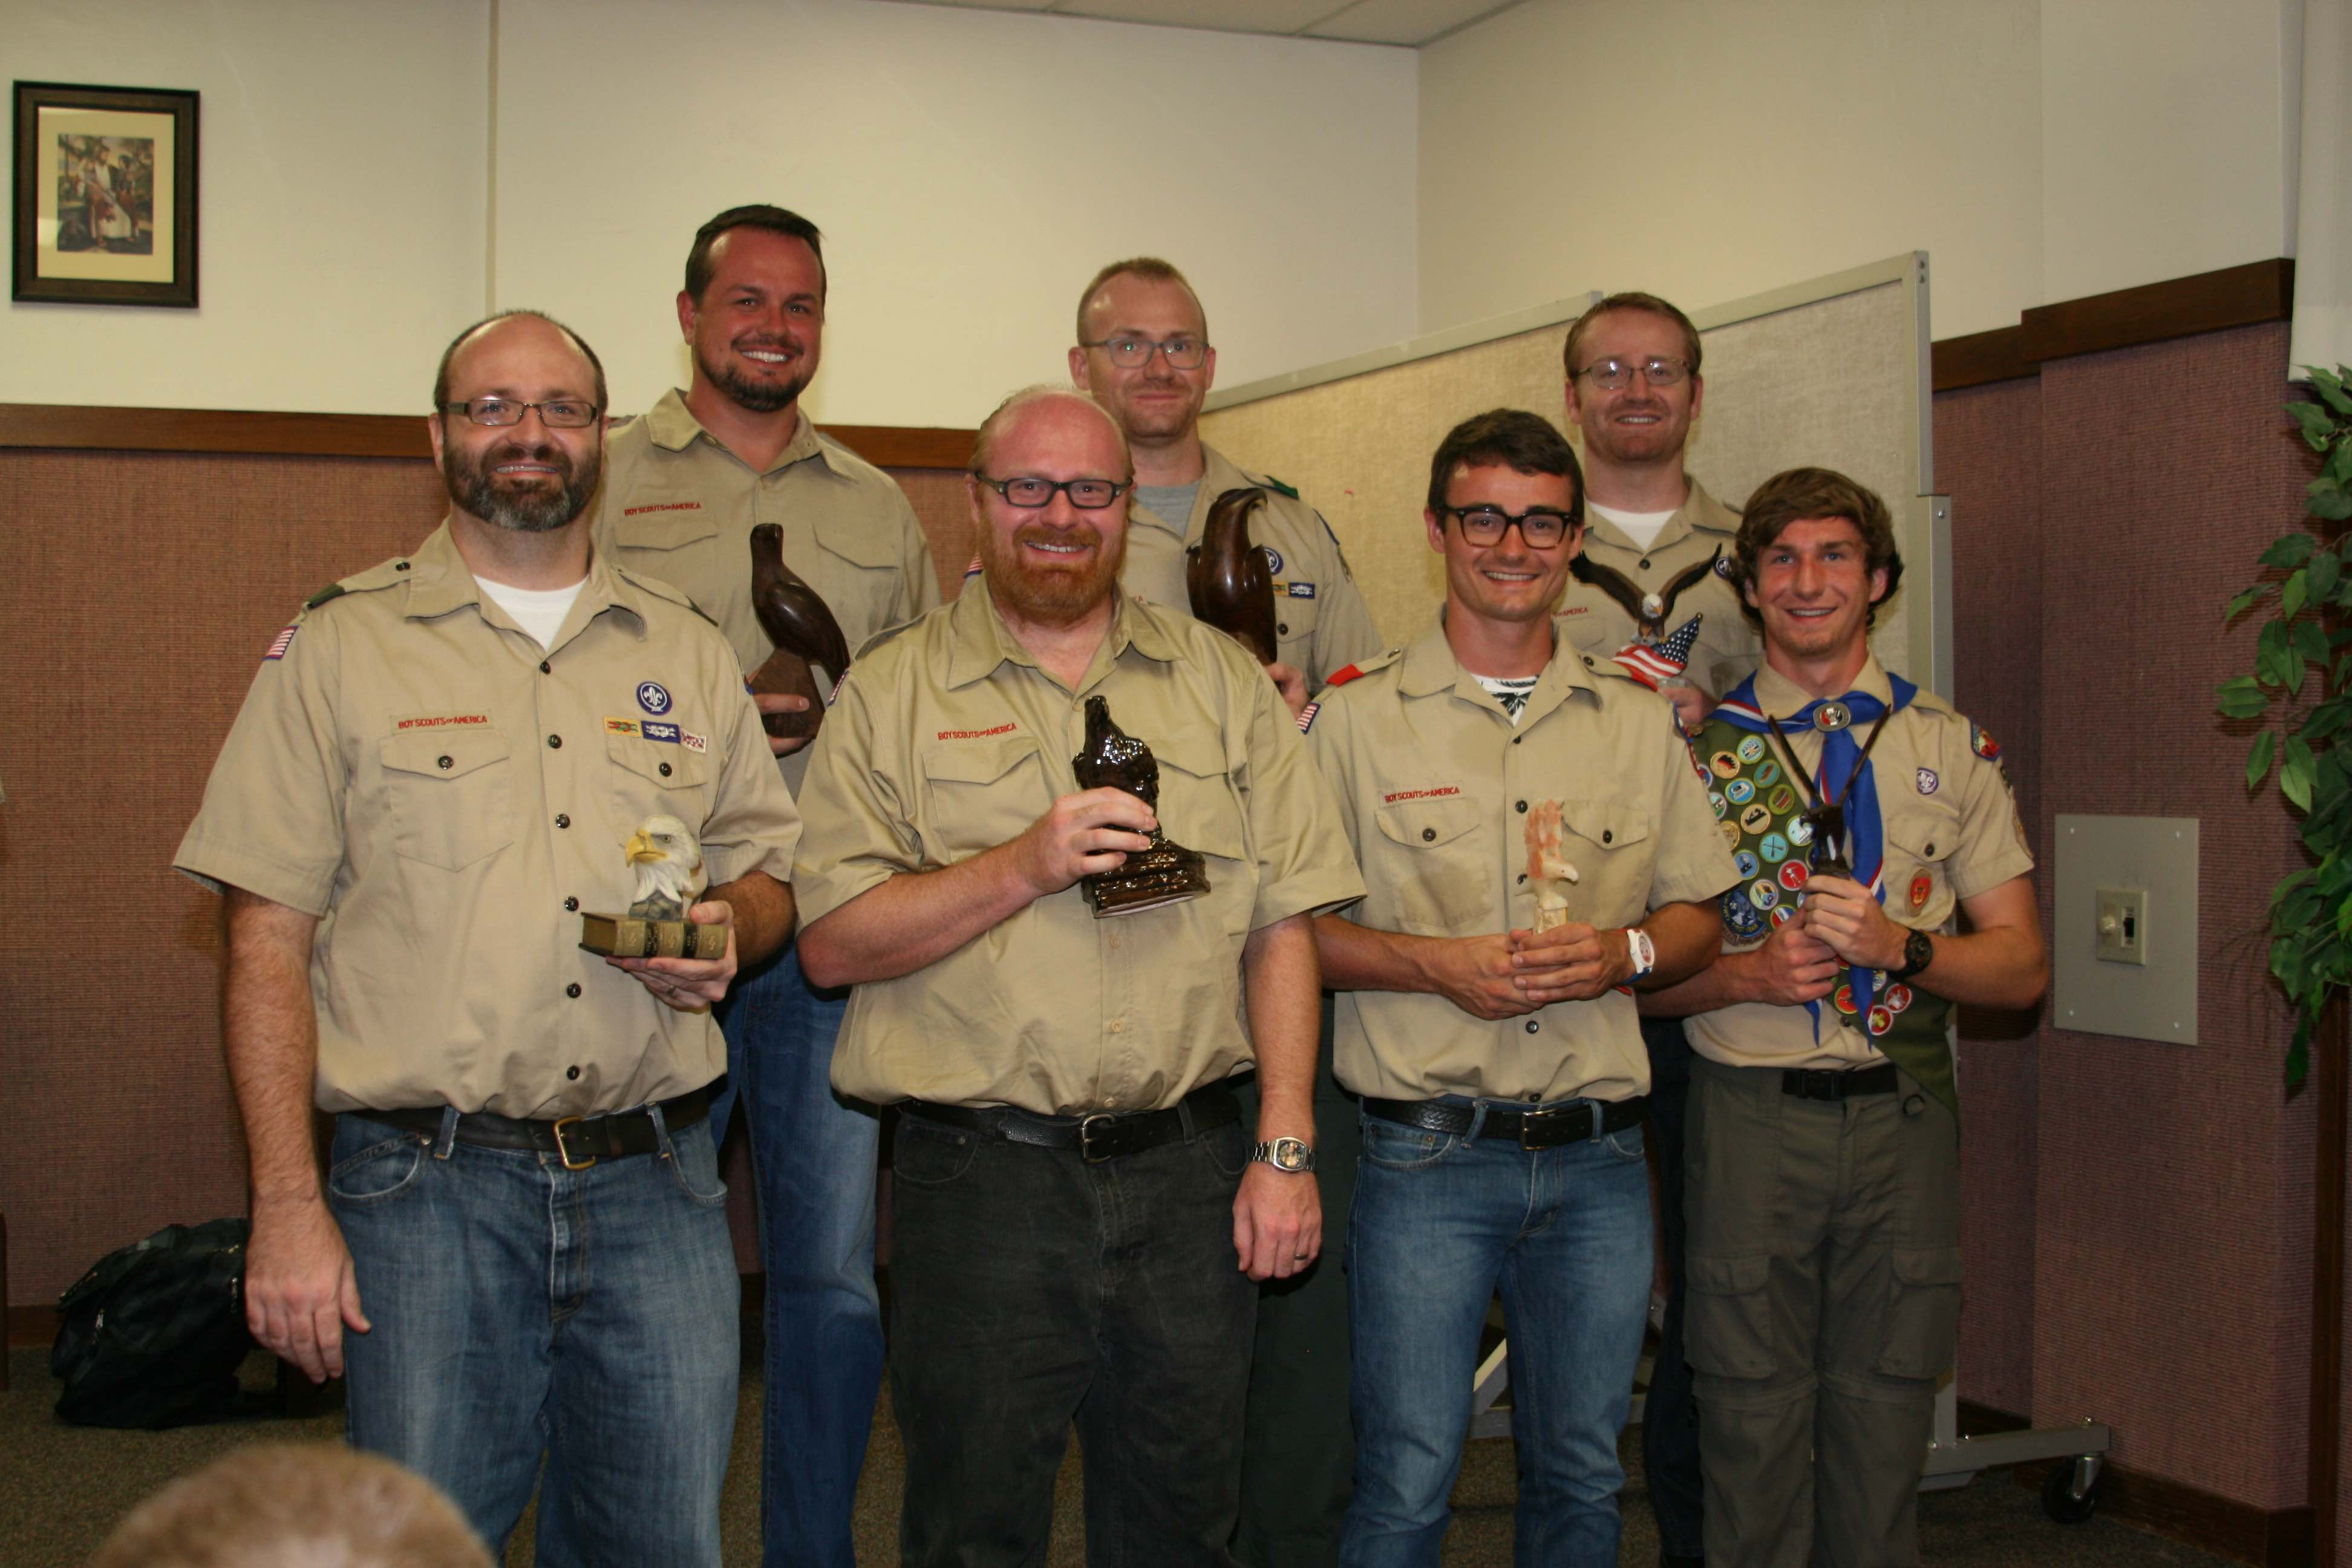 All In The Family– Seven Brothers, Seven Eagle Scouts